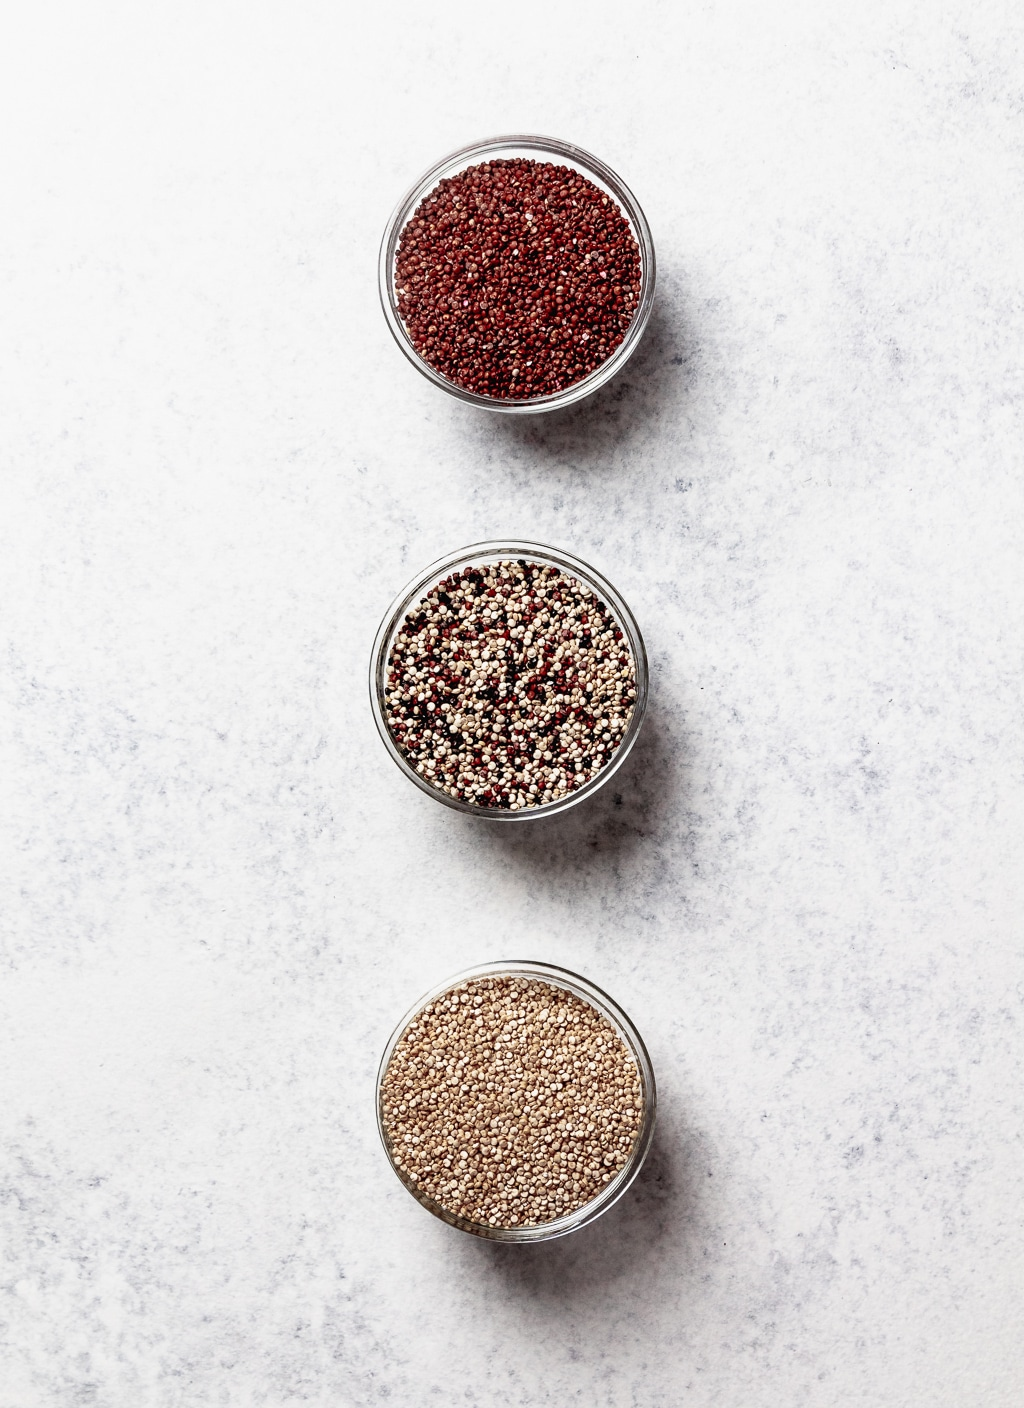 red white and tricolor quinoa, uncooked in bowls lined up vertically